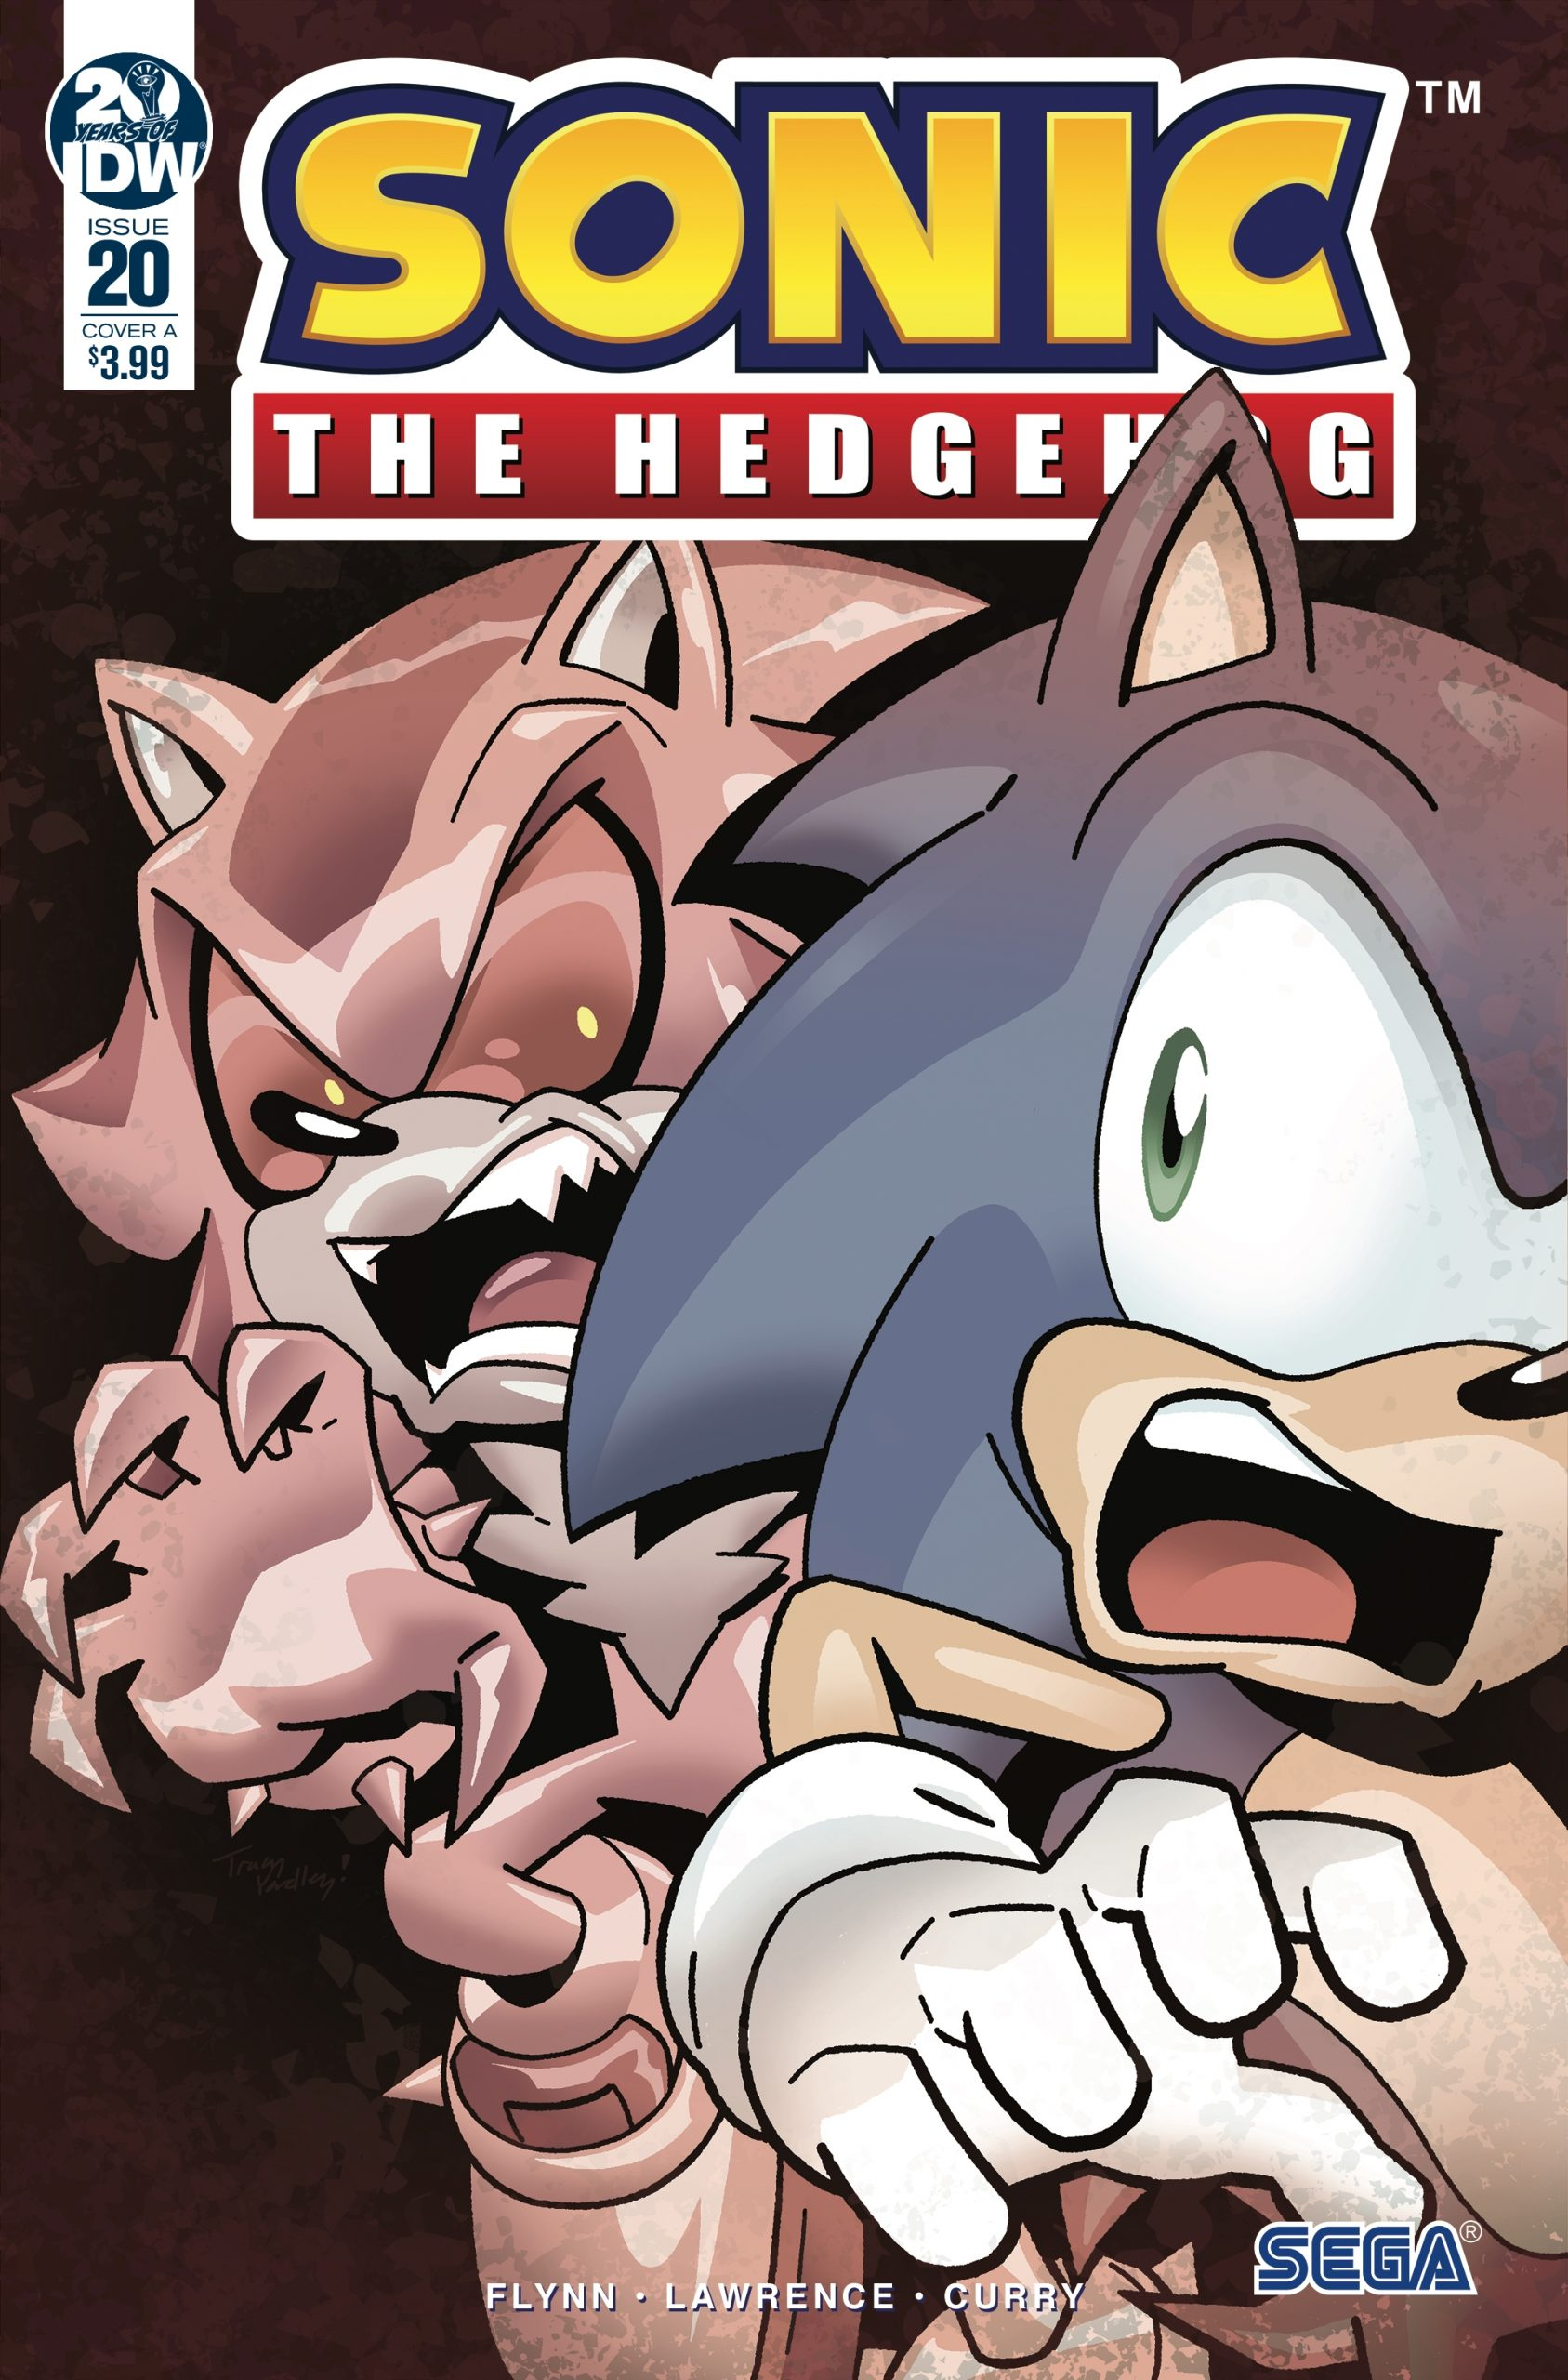 Sonic The Hedgehog #20 Cover A